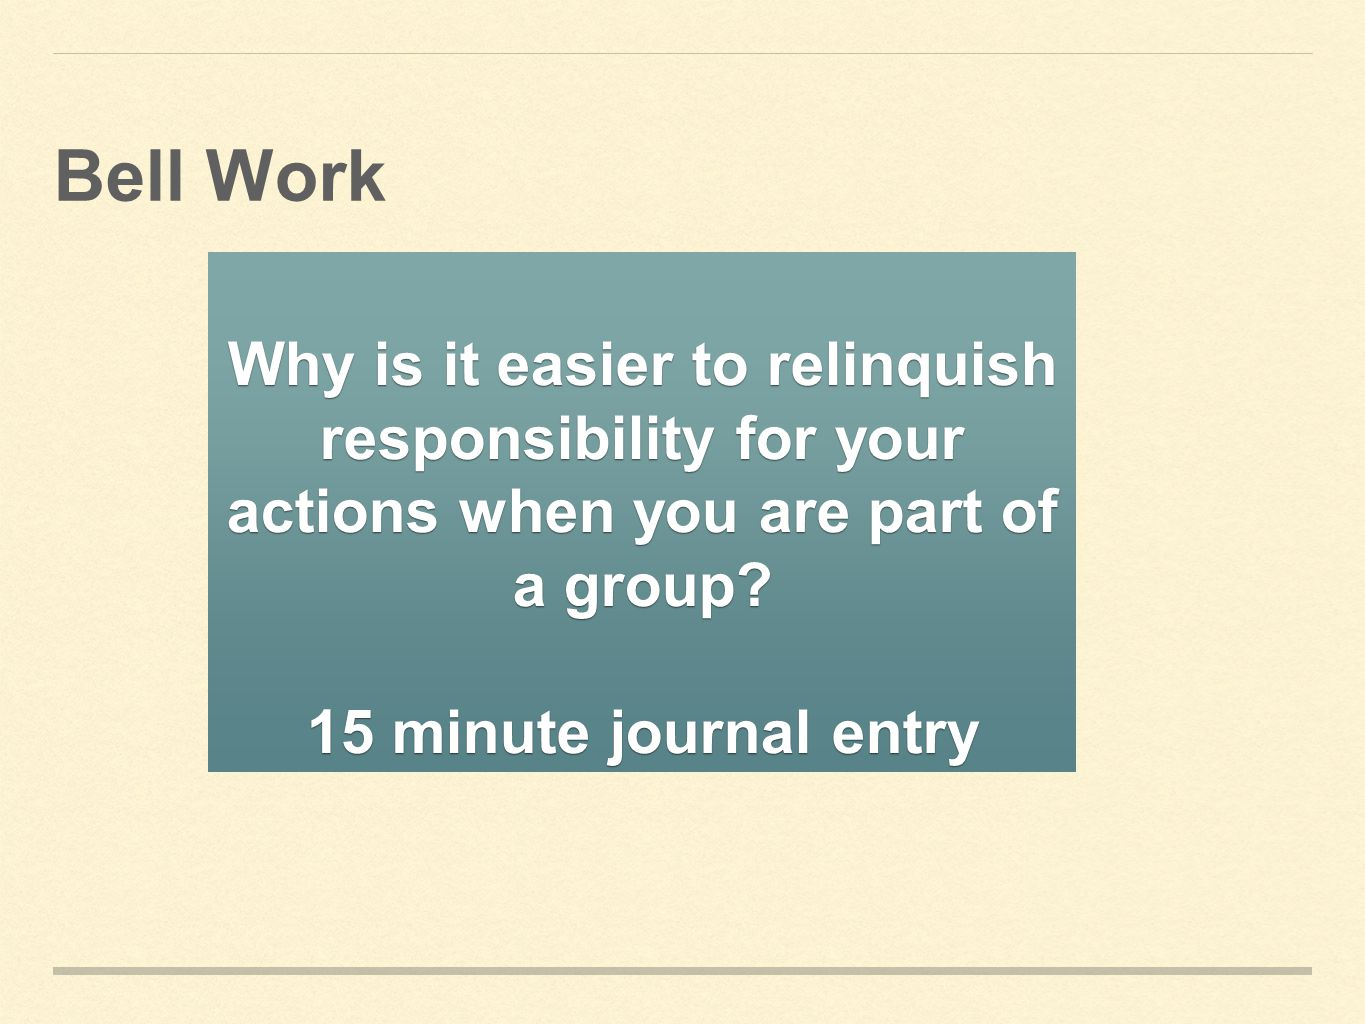 Bell Work Why is it easier to relinquish responsibility for your actions when you are part of a group